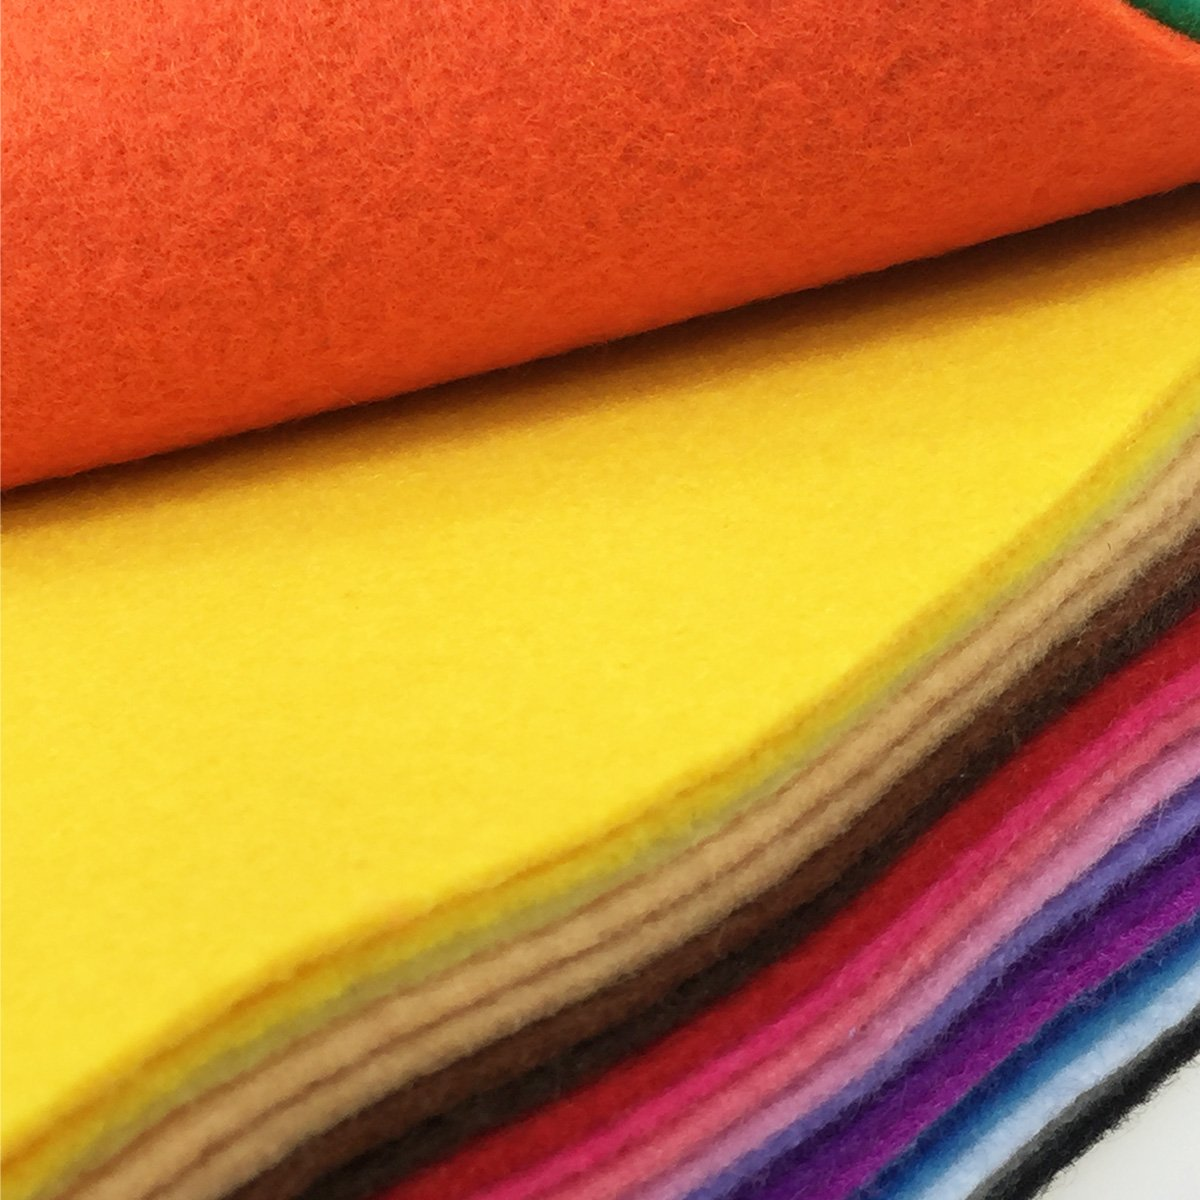 flic-flac 28pcs Thick 1.4mm Soft Felt Fabric Sheet Assorted Color Felt Pack DIY Craft Sewing Squares Nonwoven Patchwork 15 X 15 cm